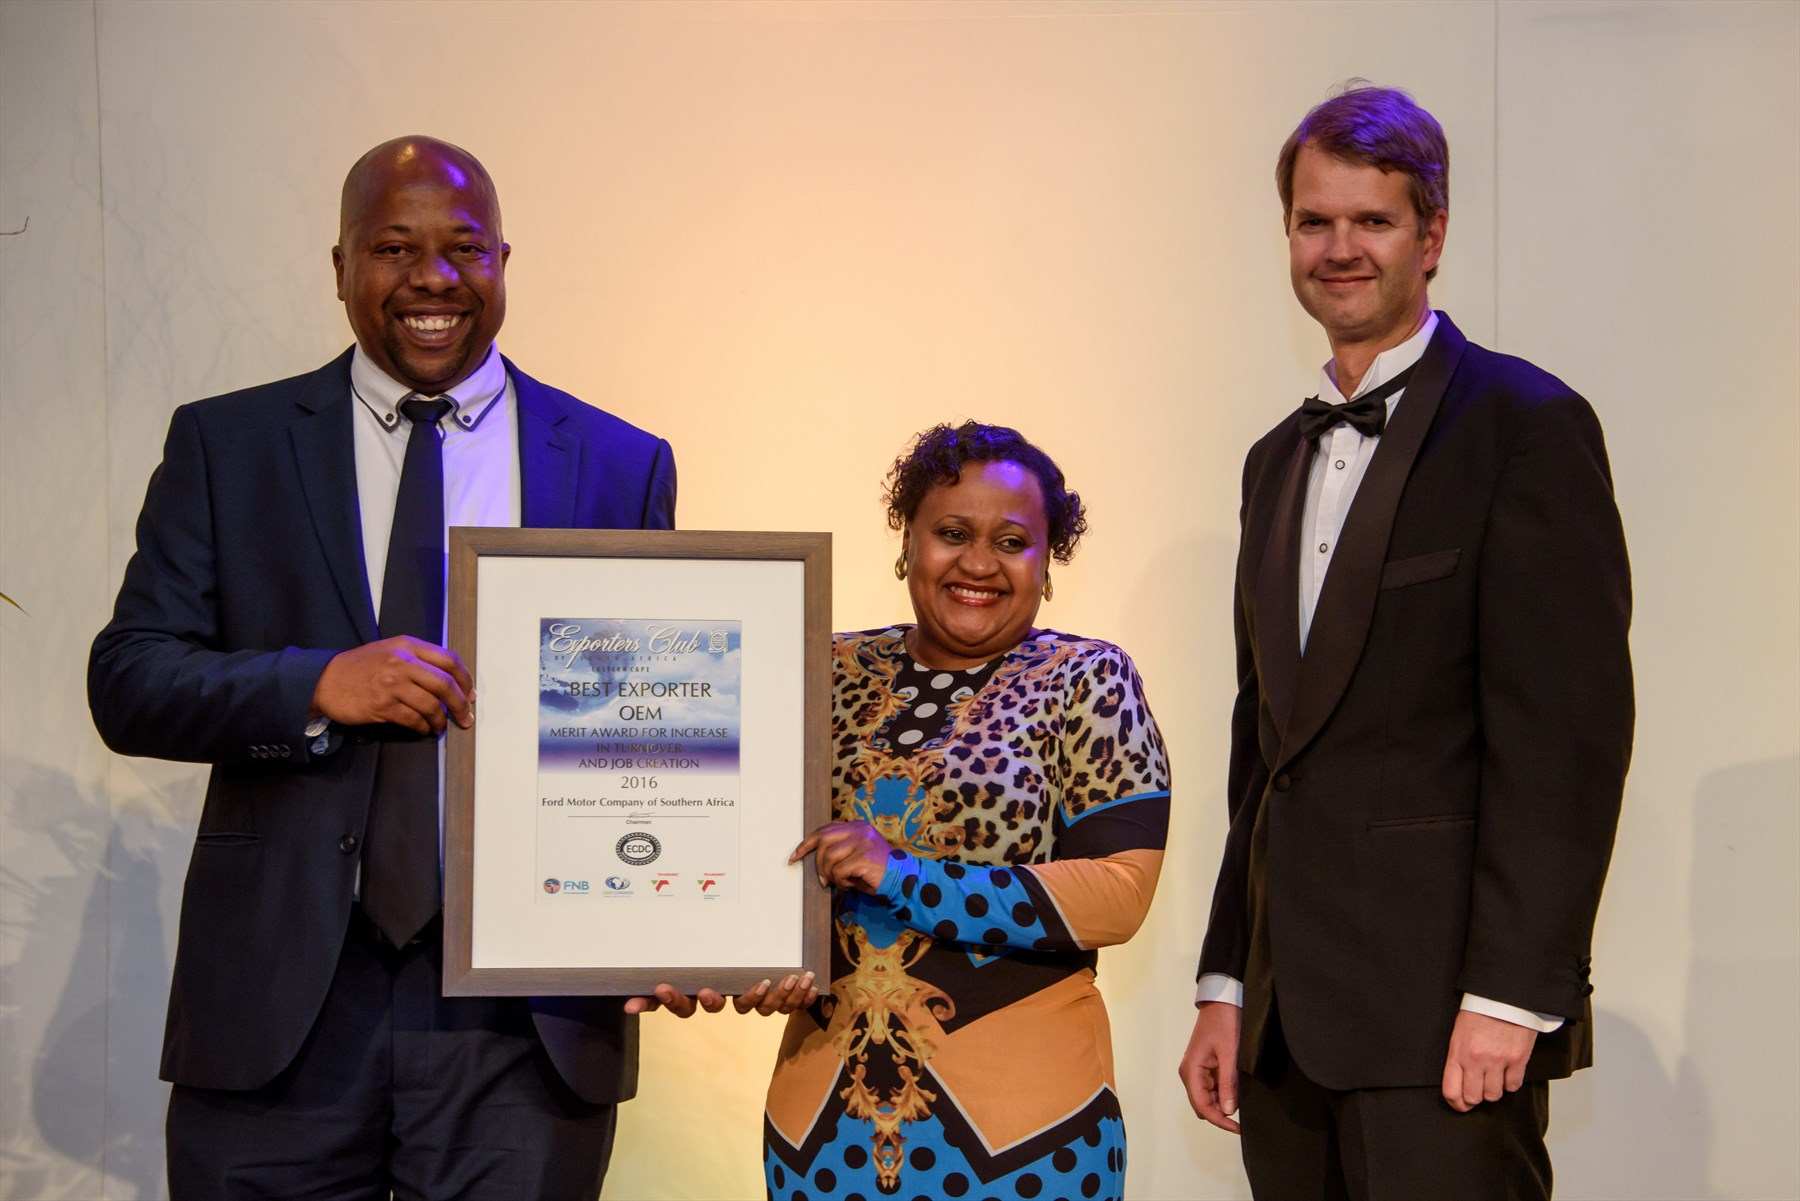 Thabo Masete (HR Manager, Ford Struandale Engine Plant) receives the Best Exporter OEM Merit Award from Colleen Siwisa (Coordinator: Investment Missions at Eastern Cape Development Corporation) and Quntin Levey